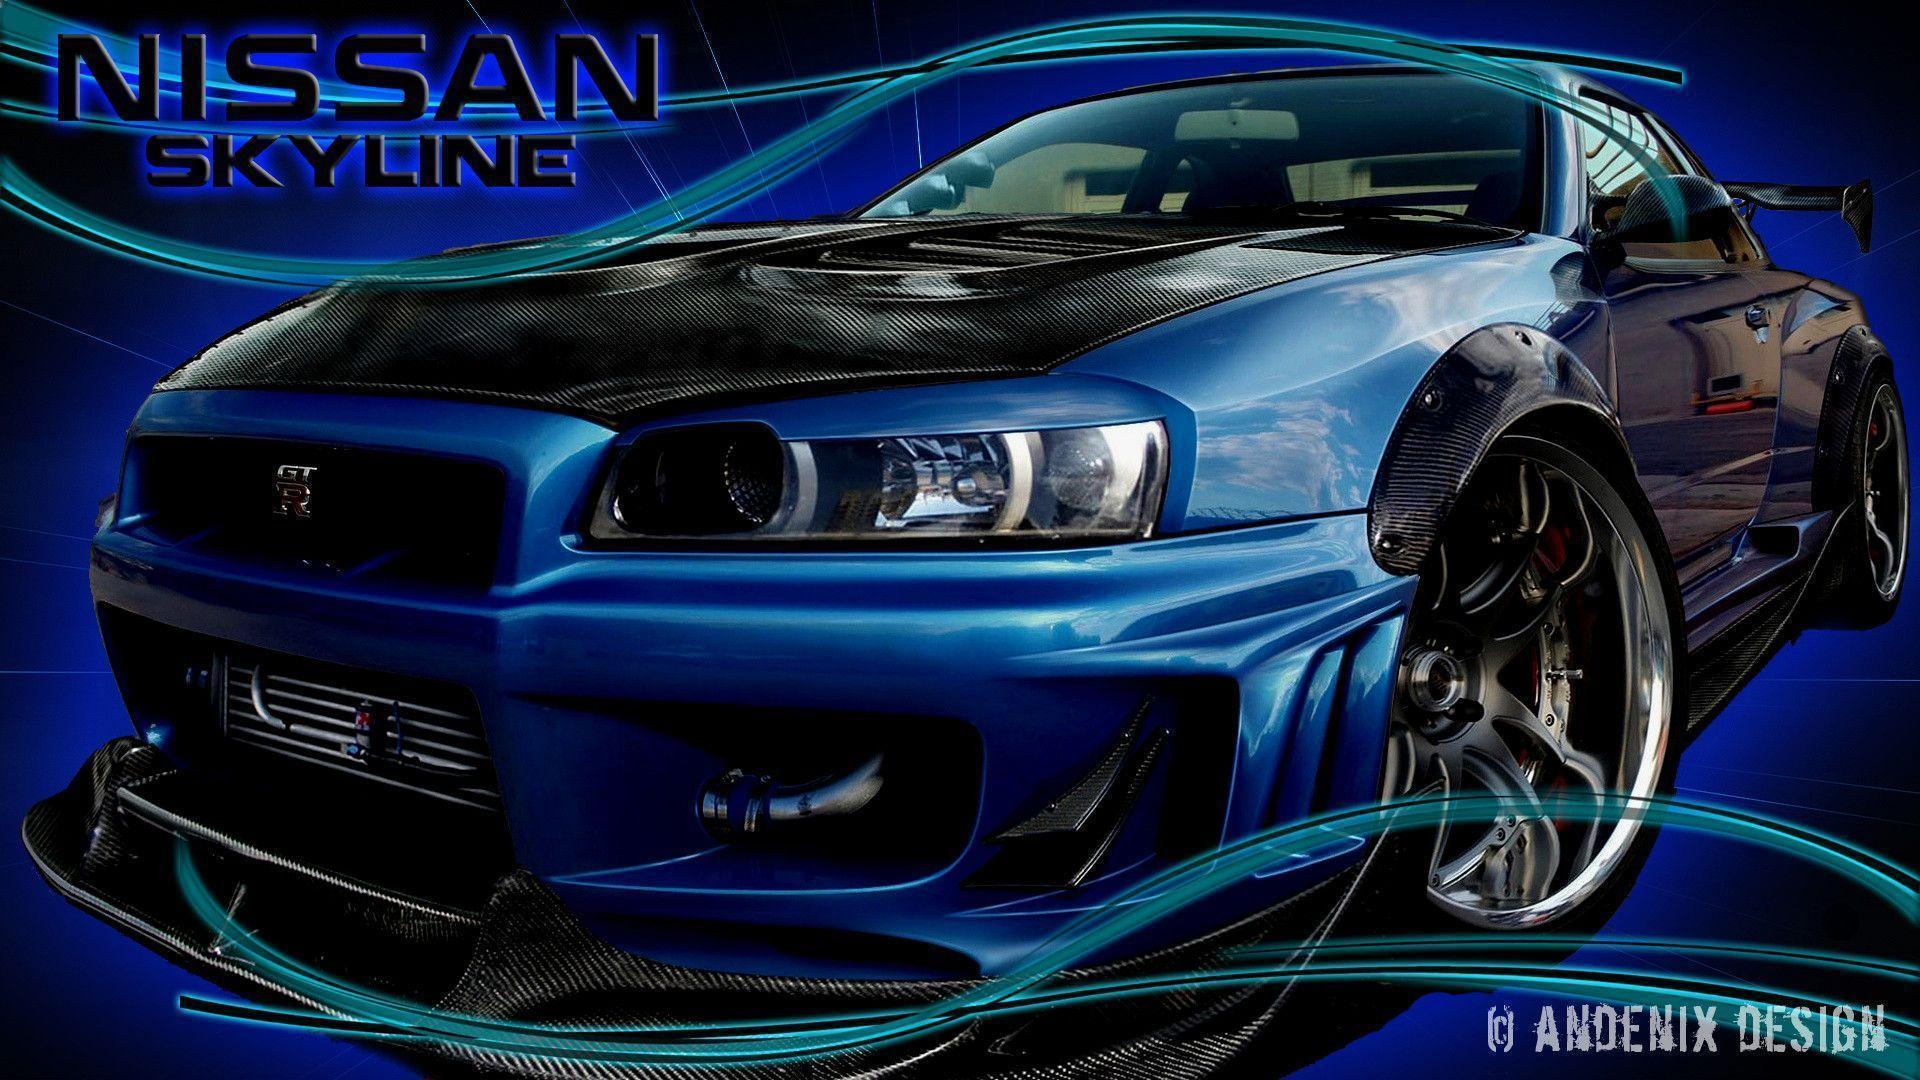 Nissan Skyline Wallpapers by Andenix